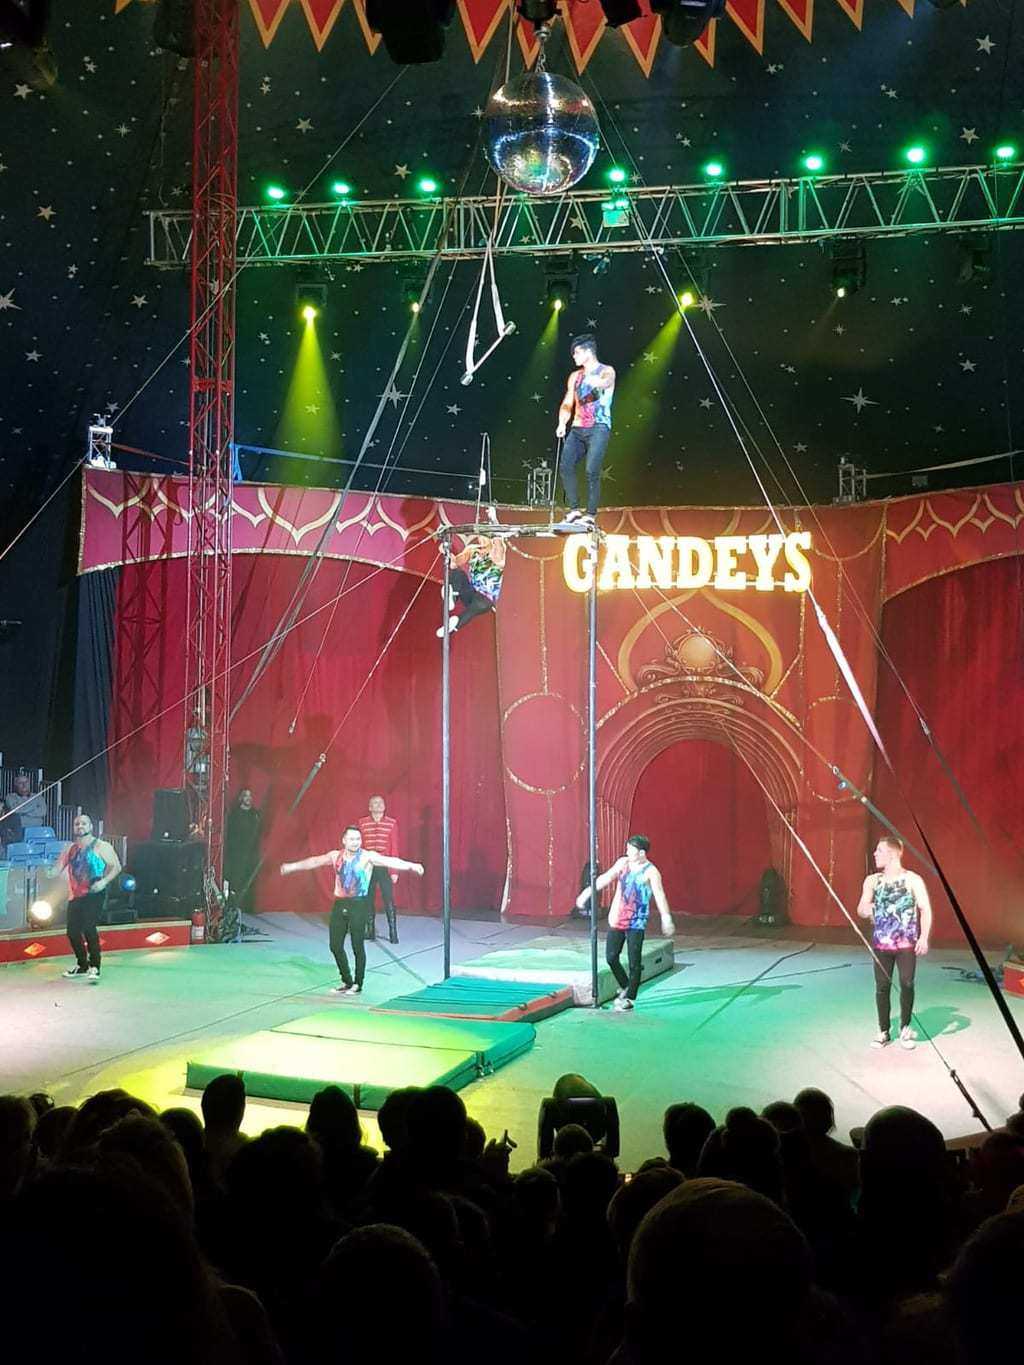 Review of Gandeys Circus - Unbelievable